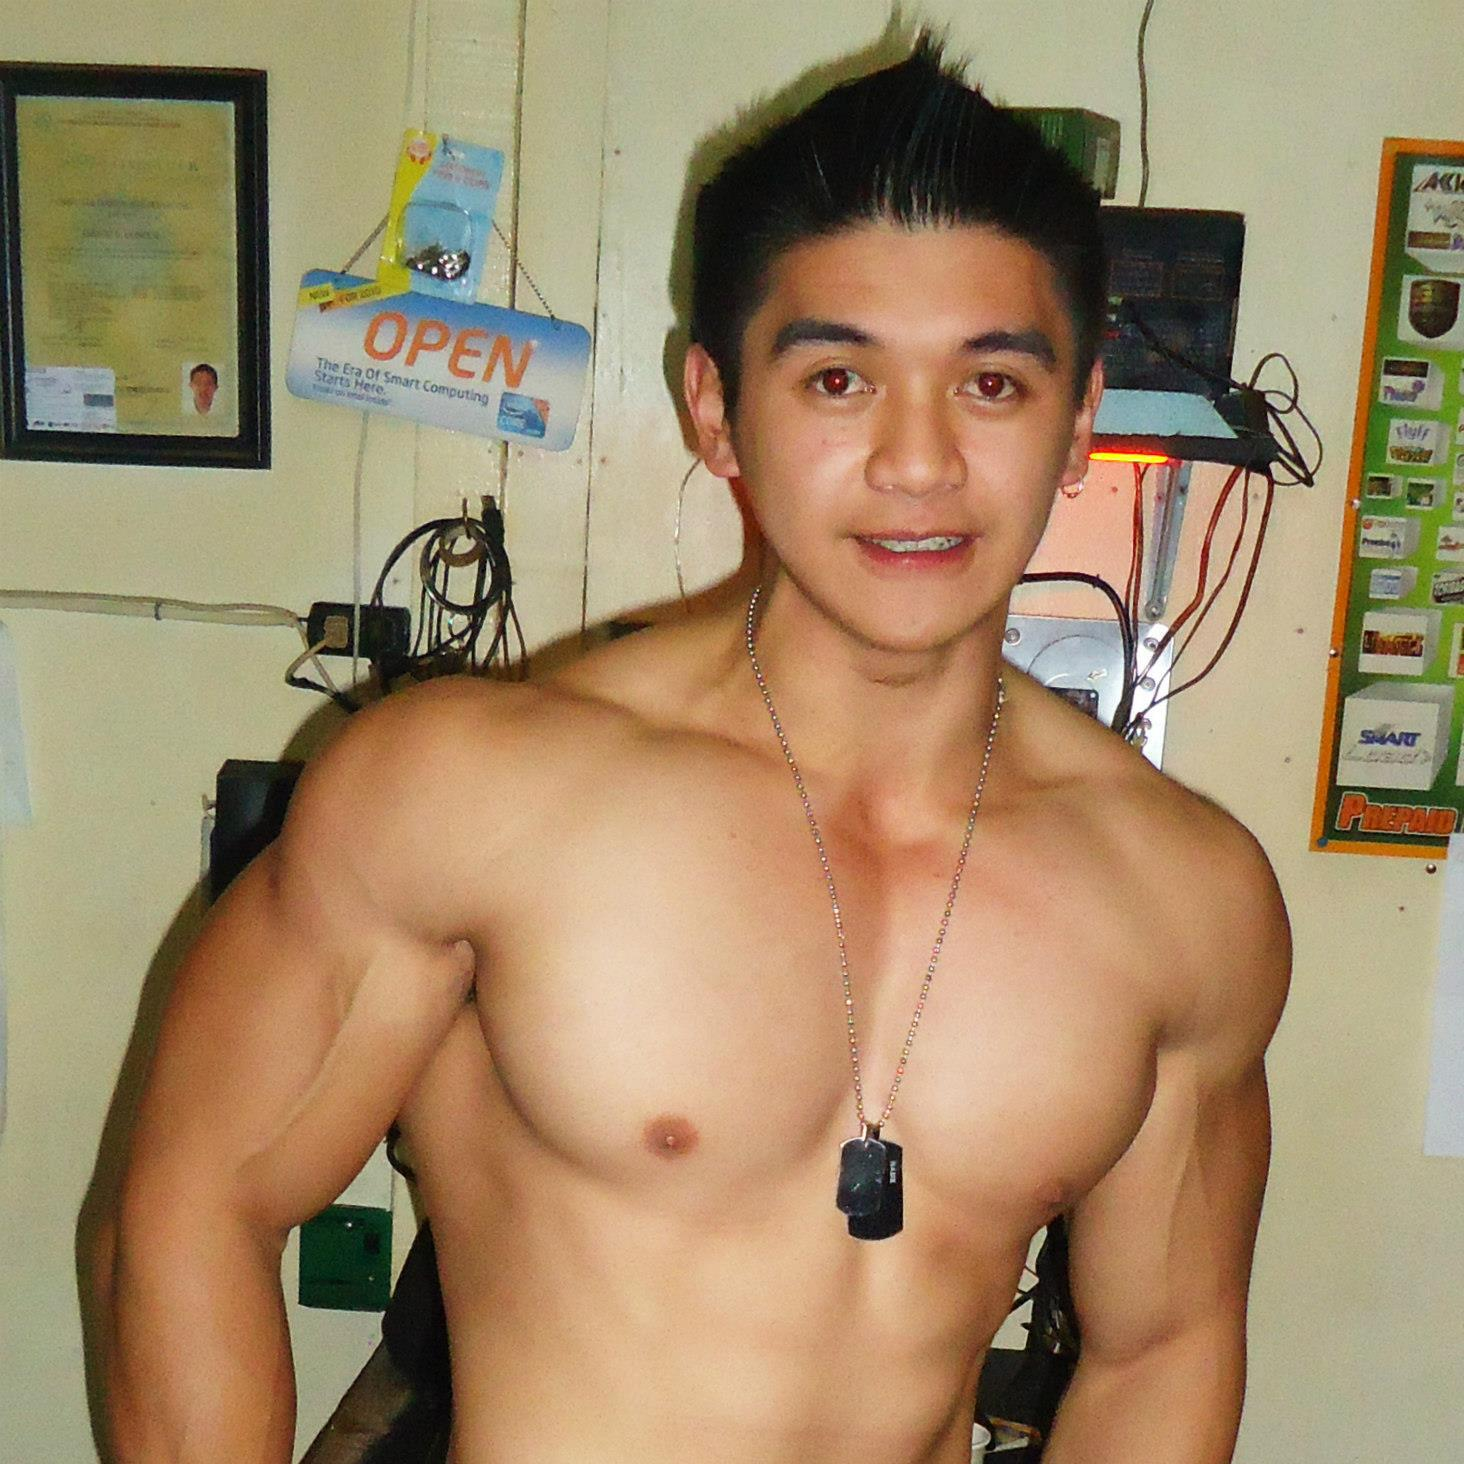 Nude pinoy men model share